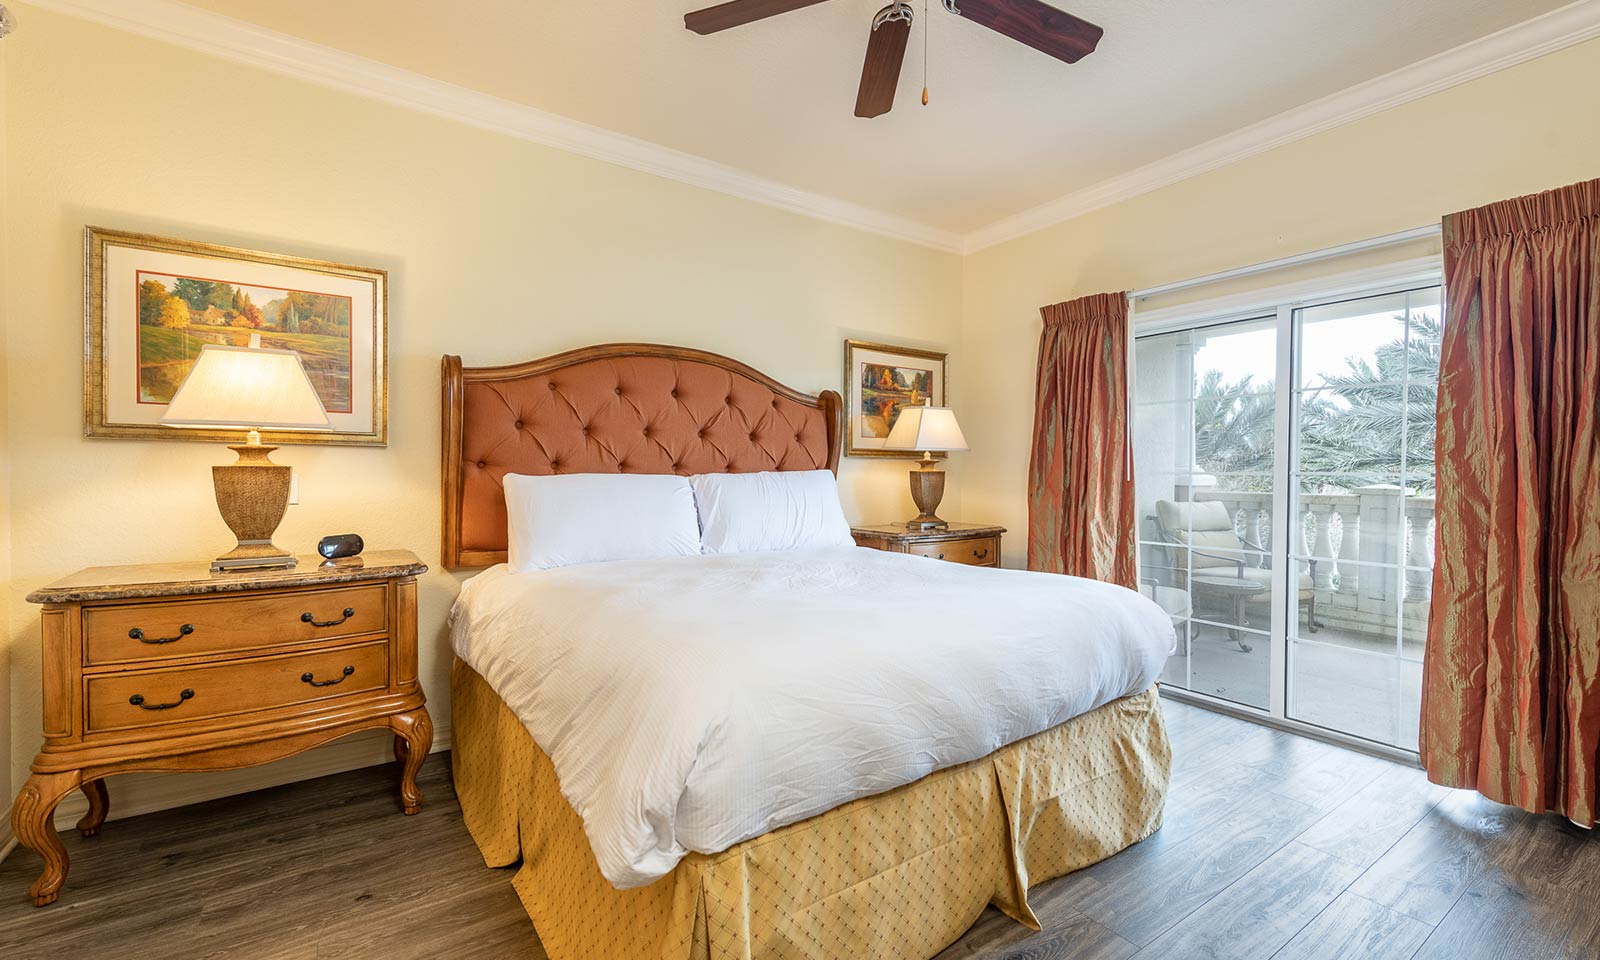 [amenities:Master-Bedroom:3] Master Bedroom